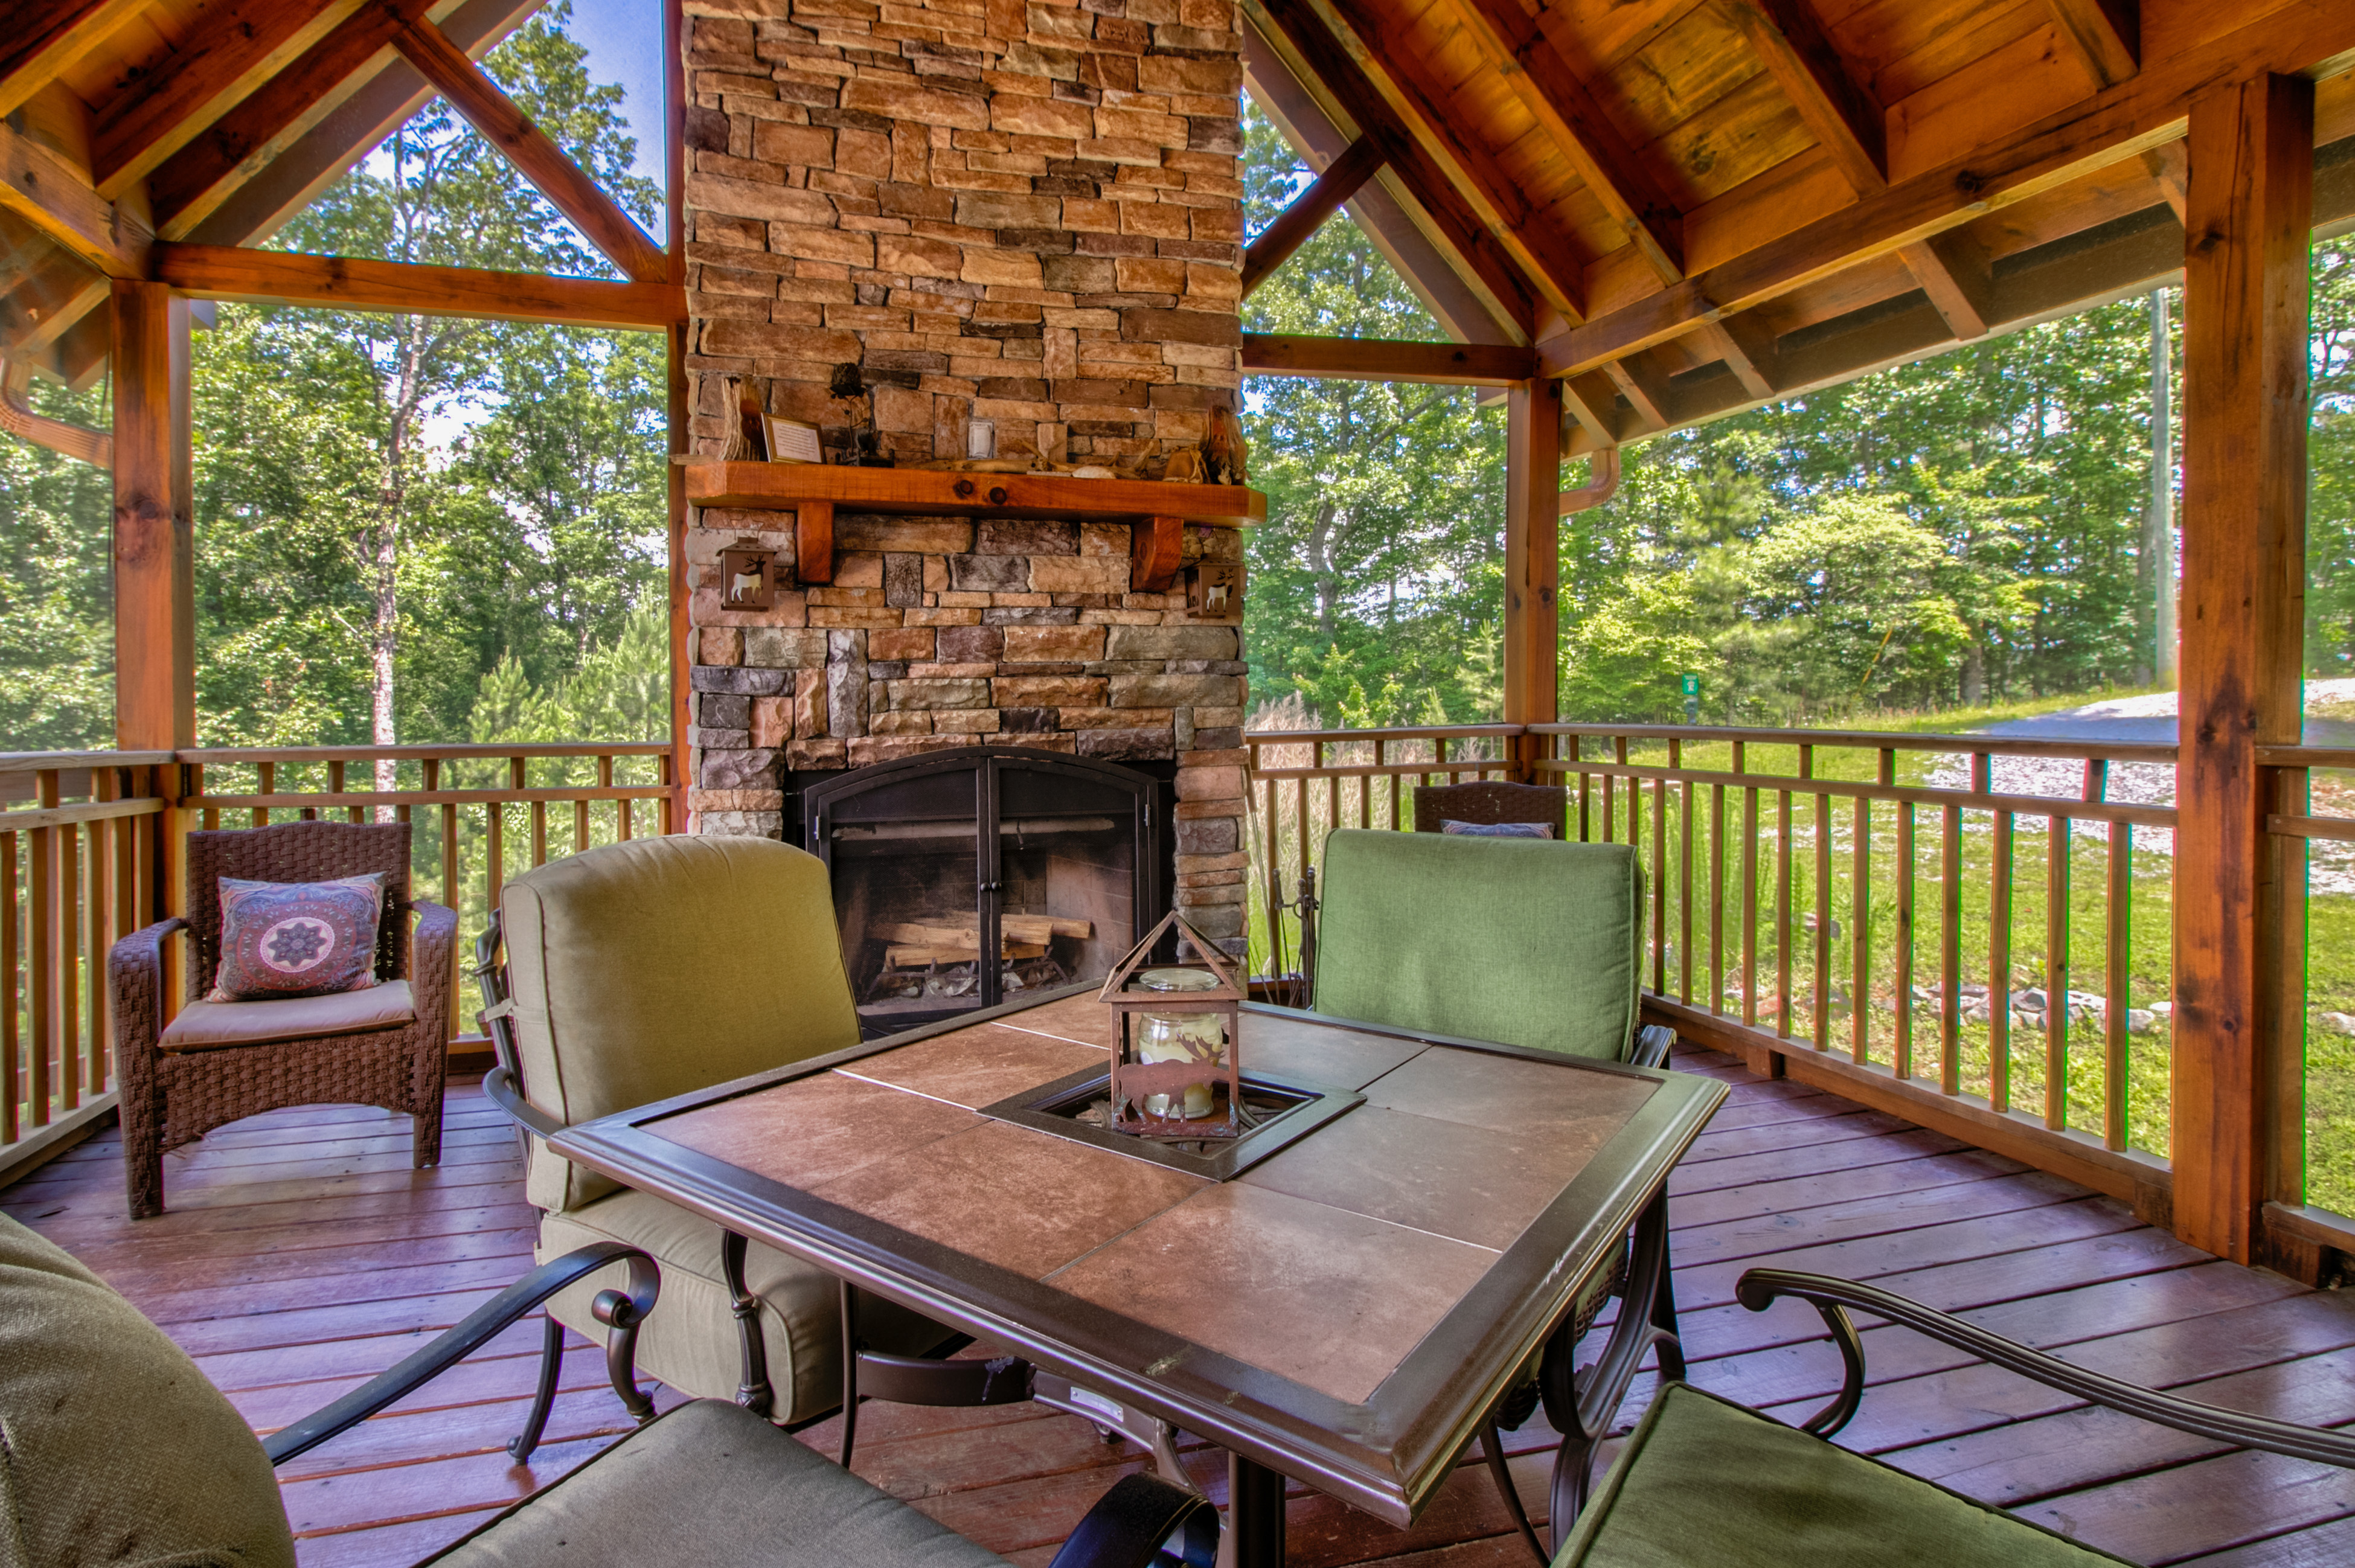 whippoorwill michael konkel nearby ga ellijay dr contact in listings cabins location